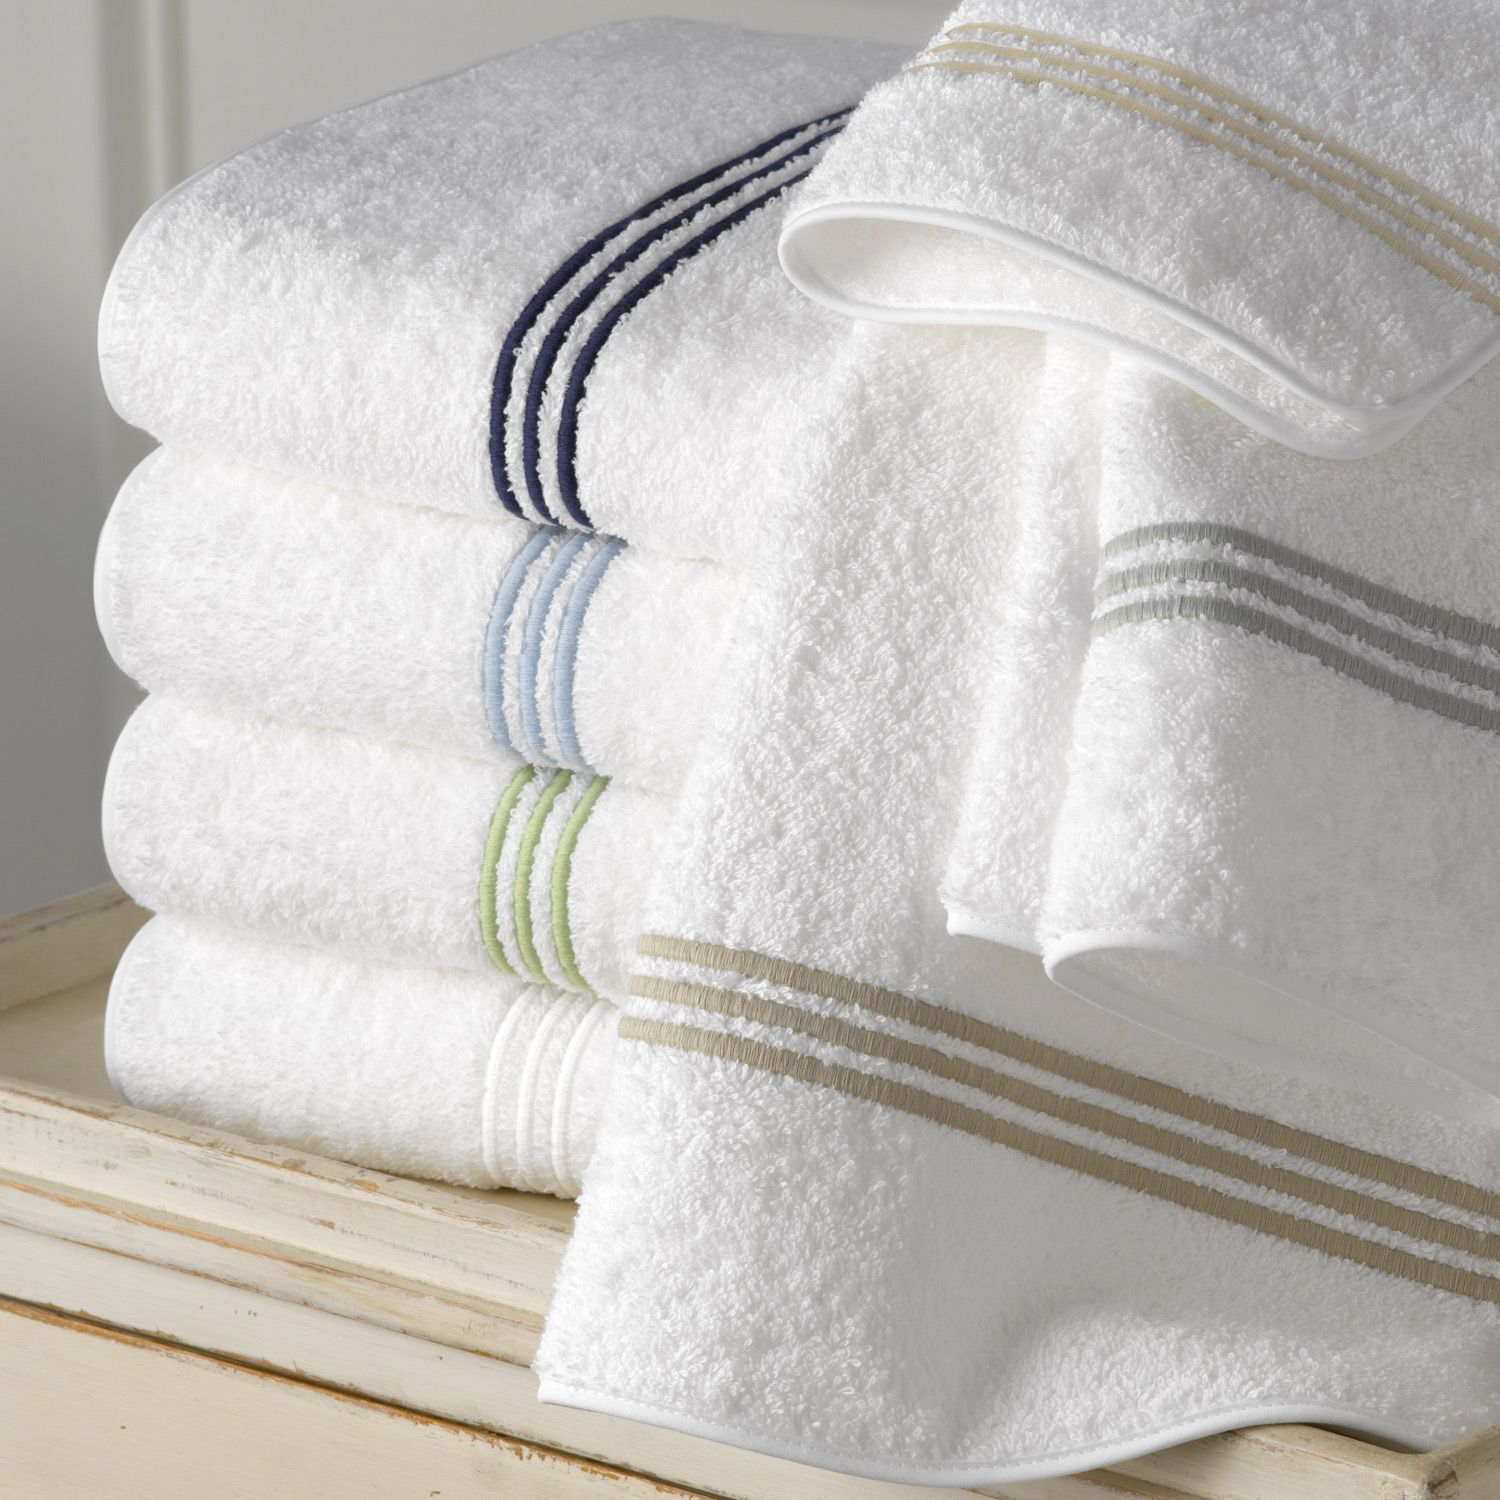 Matouk Three Rows Of Elegantly Embroidered Stripes In Ivory Silver Almond White Spring Green Blue Navy Or B With Images Bath Towels Luxury Bath Linens Luxury Linen